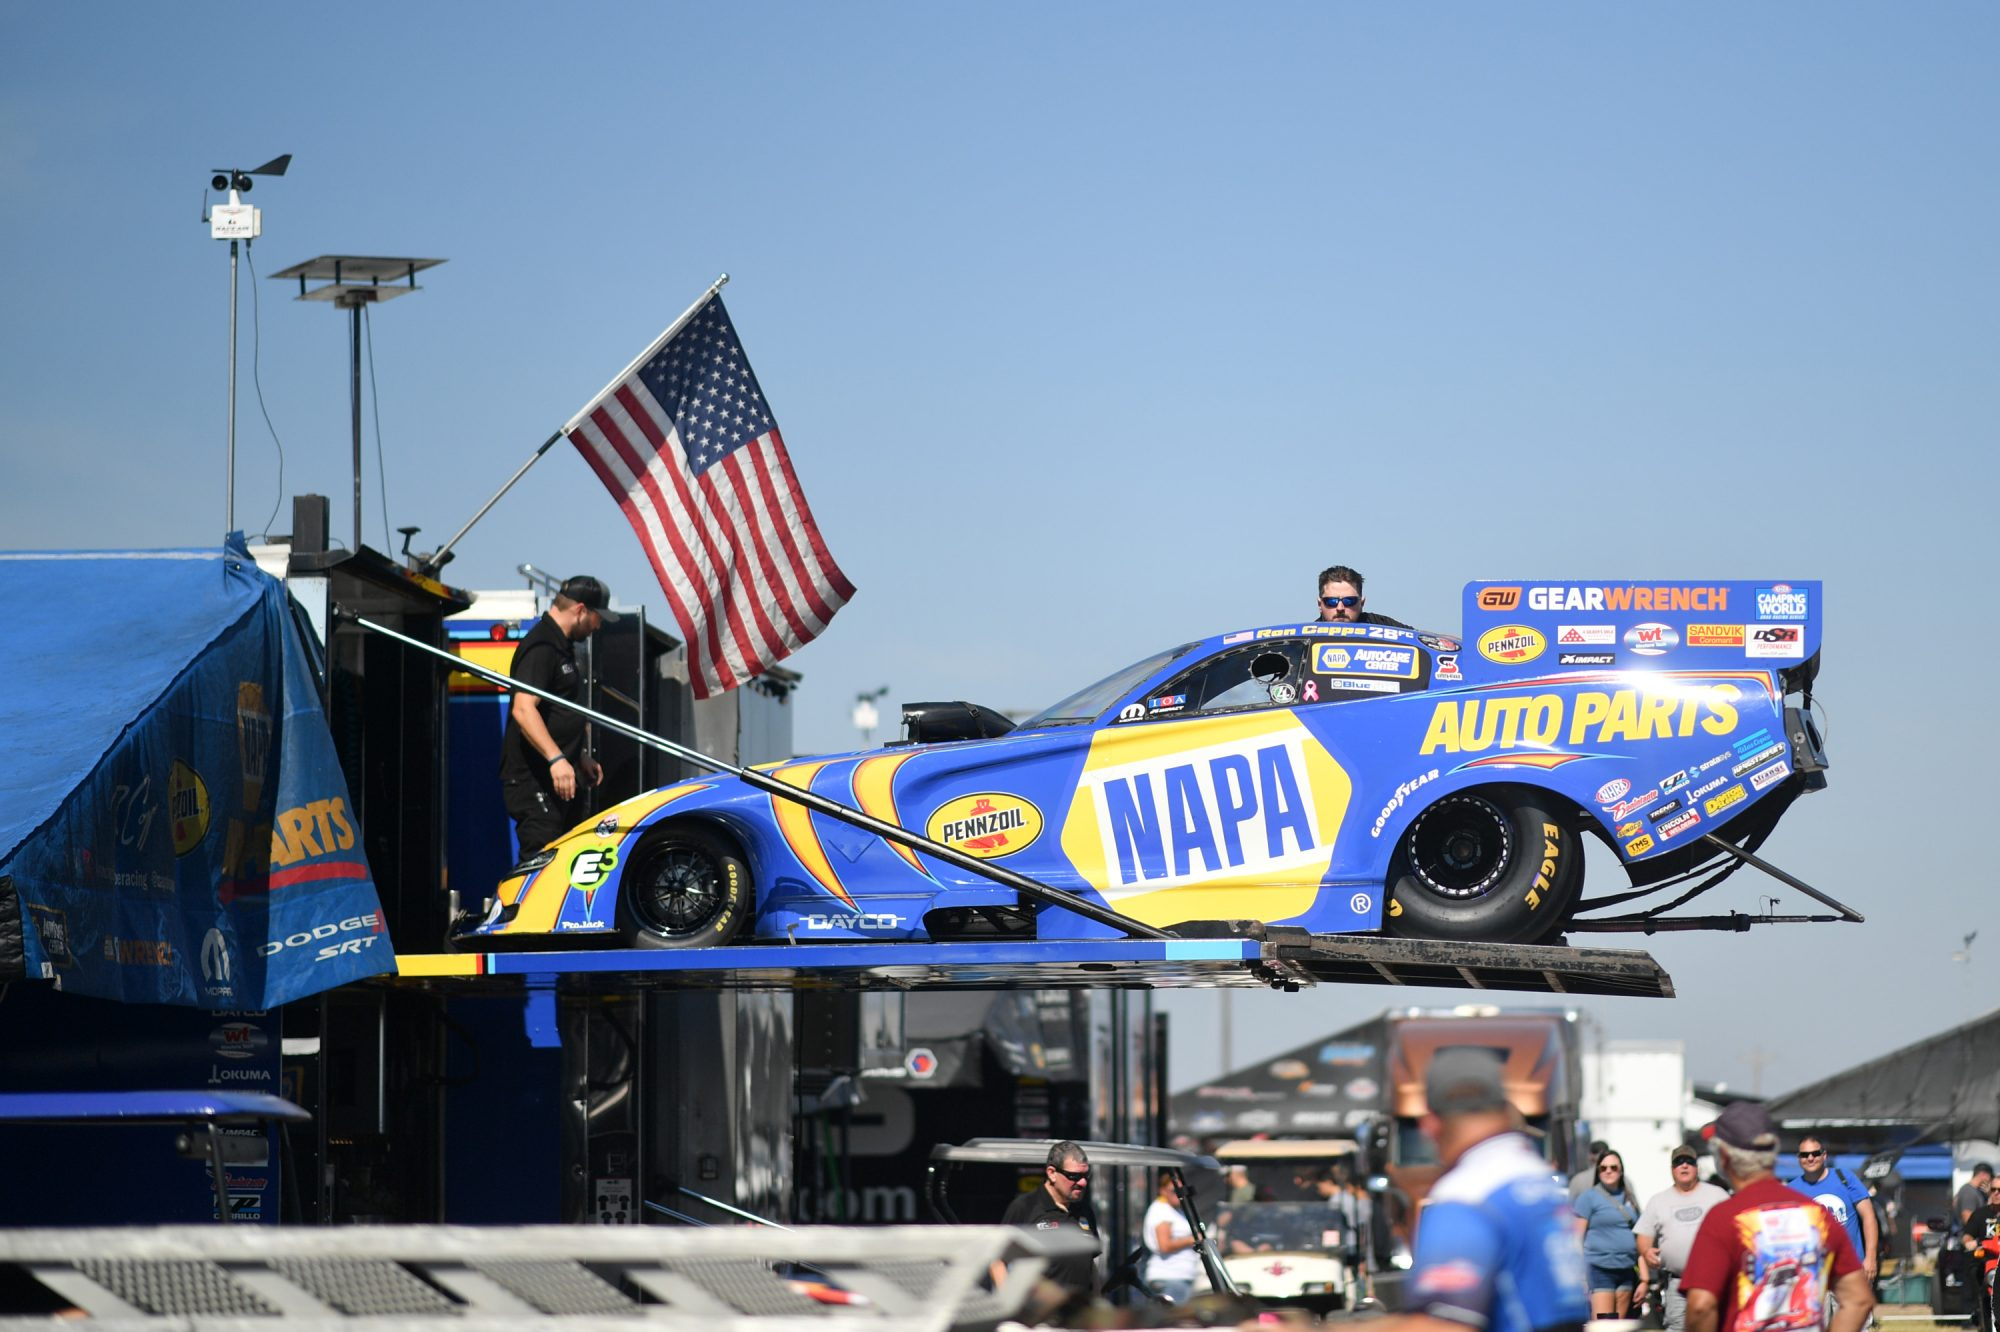 Ron Capps' car coming off the trailer